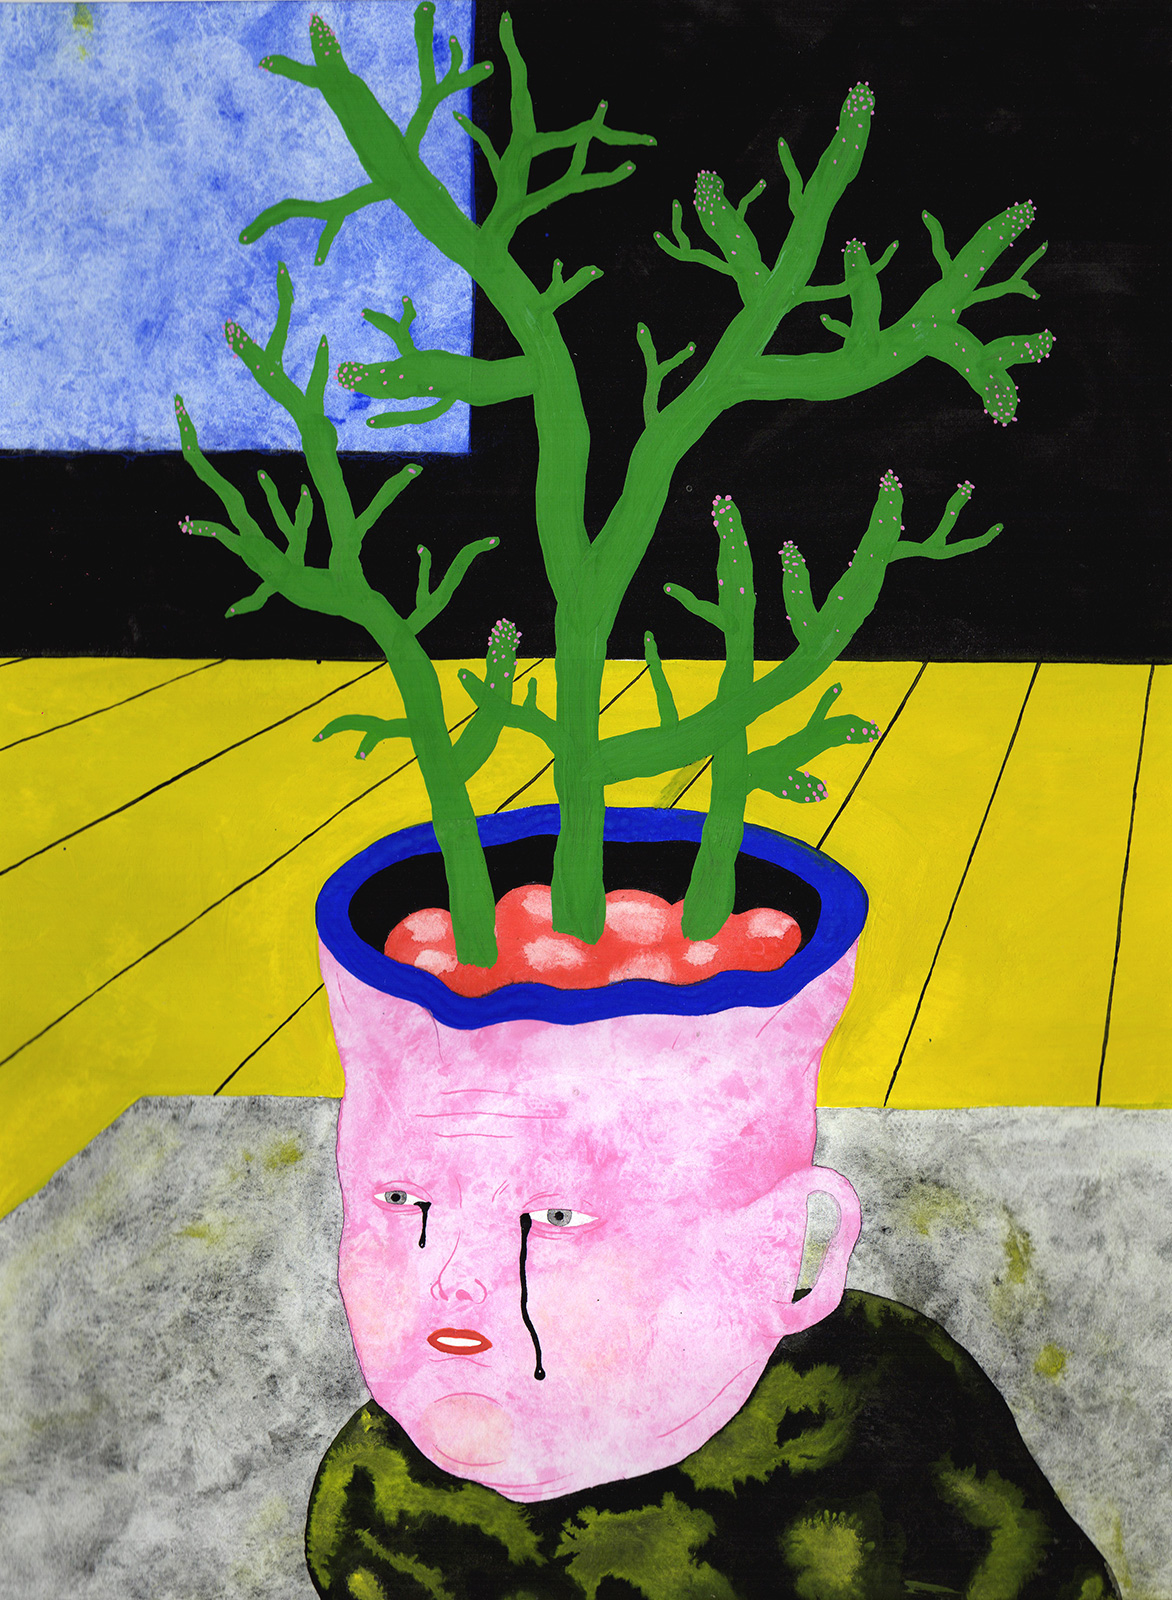 art-prints, drawings, giclee, gouache, watercolors, colorful, figurative, portraiture, surrealistic, botany, cartoons, humor, people, blue, grey, pink, yellow, ink, paper, amusing, contemporary-art, copenhagen, danish, decorative, design, faces, feminist, flowers, interior, interior-design, modern, modern-art, nordic, plants, posters, prints, scandinavien, Buy original high quality art. Paintings, drawings, limited edition prints & posters by talented artists.